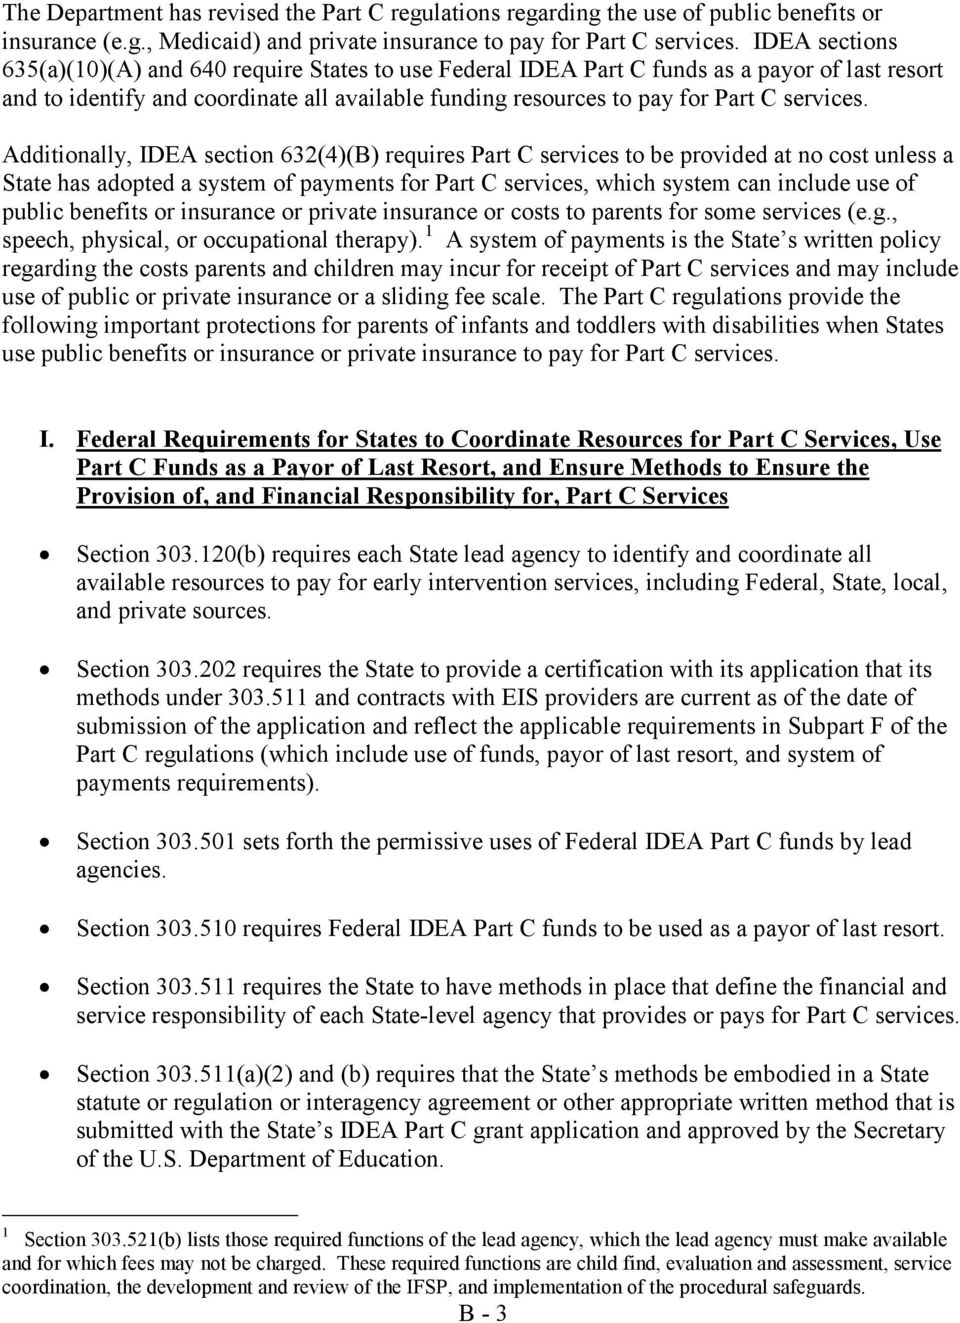 PART C OF THE INDIVIDUALS WITH DISABILITIES EDUCATION ACT